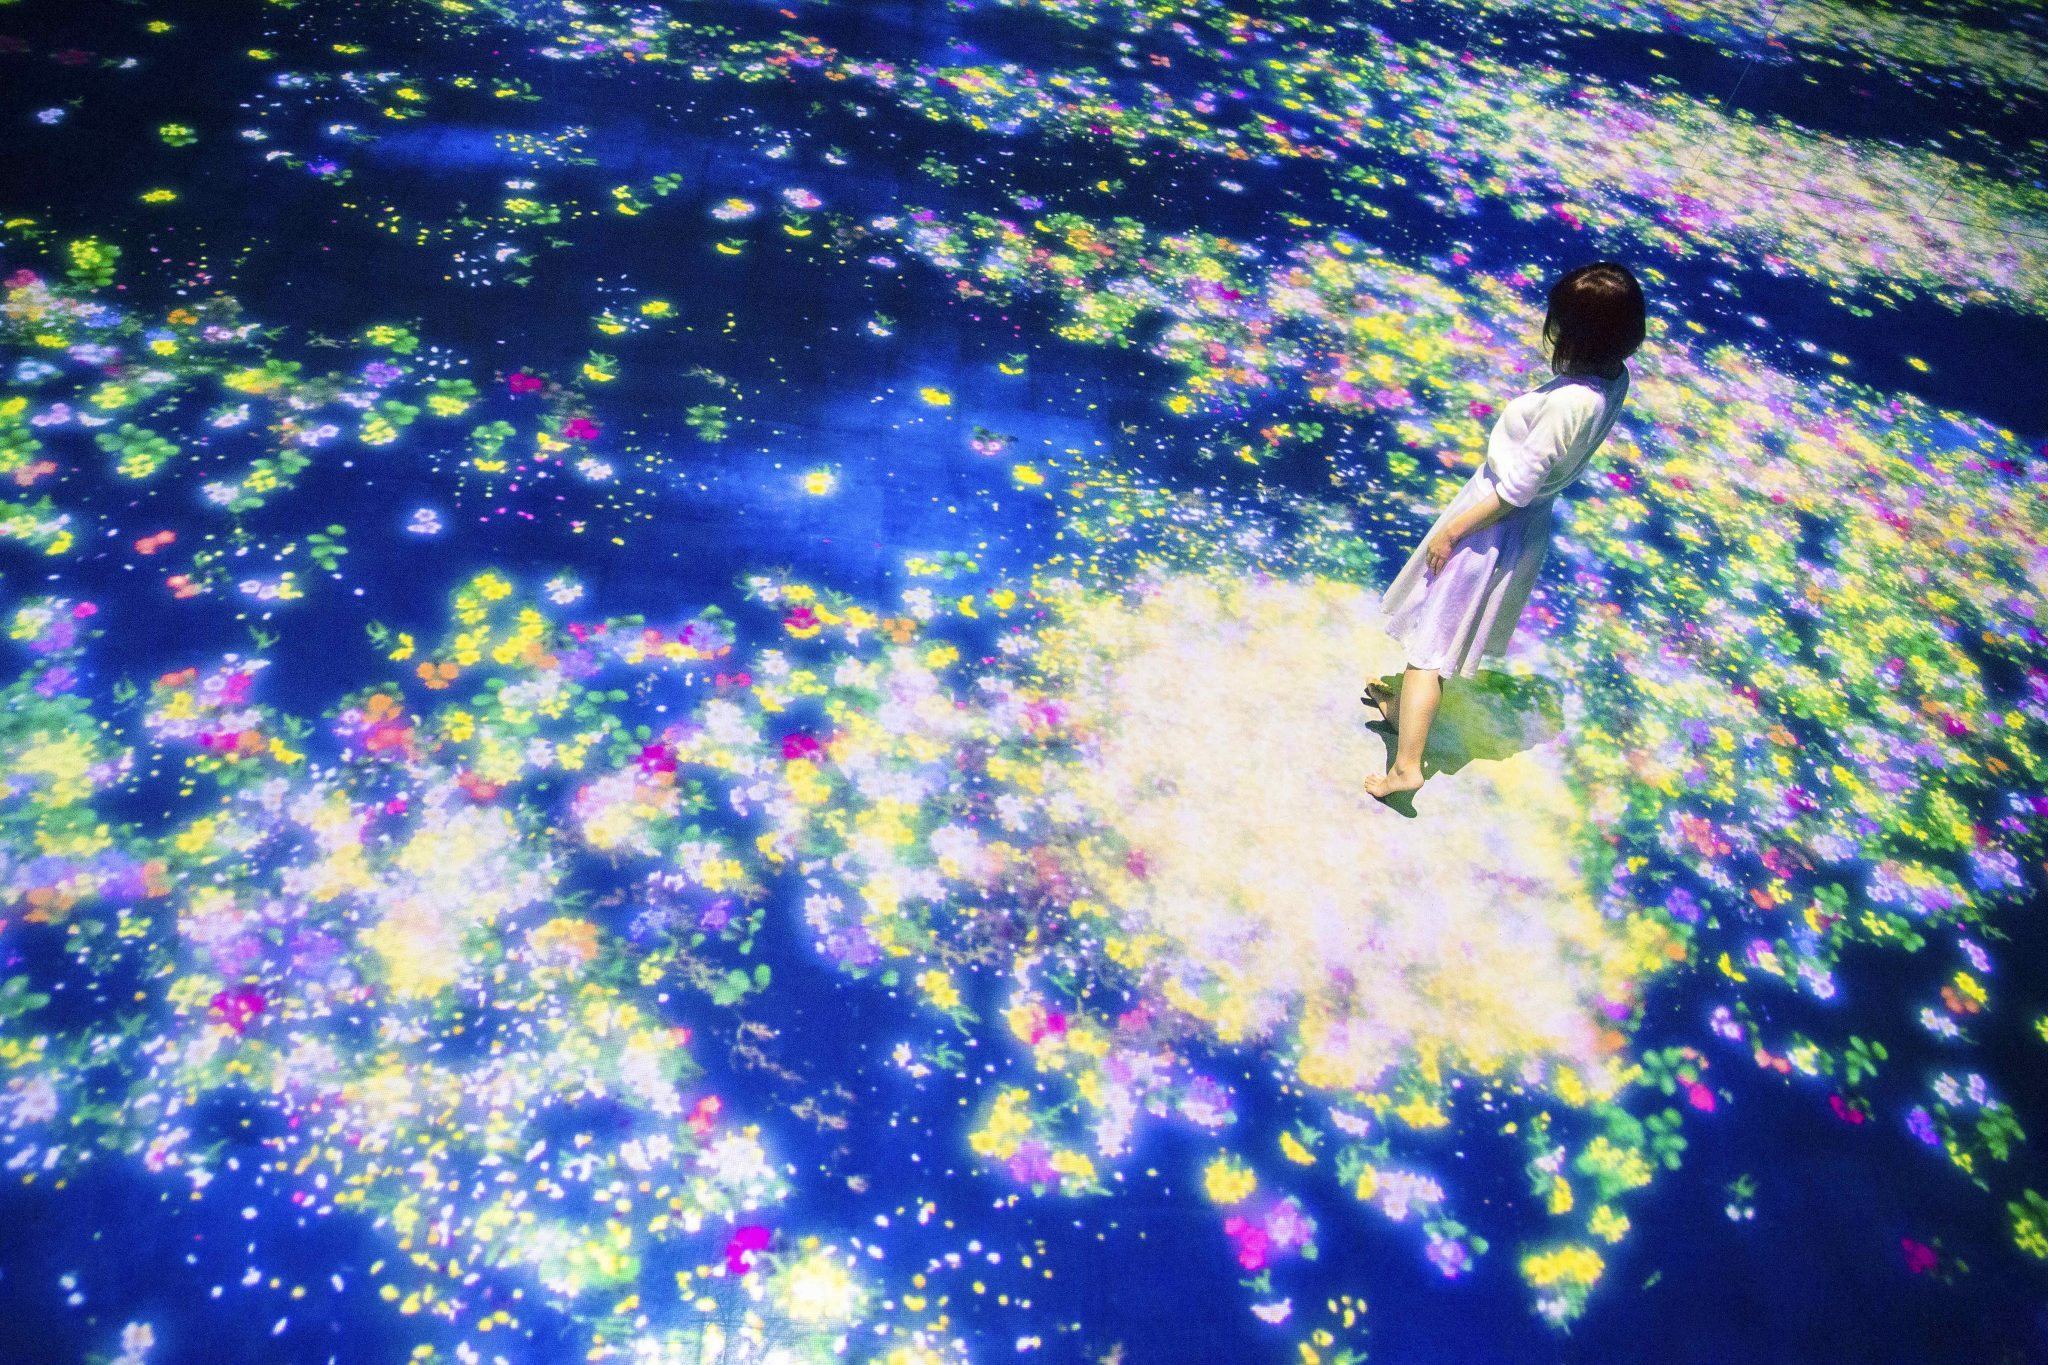 Flowers-and-People,-Cannot-be-Controlled-but-Live-Together_Courtesy TeamLab